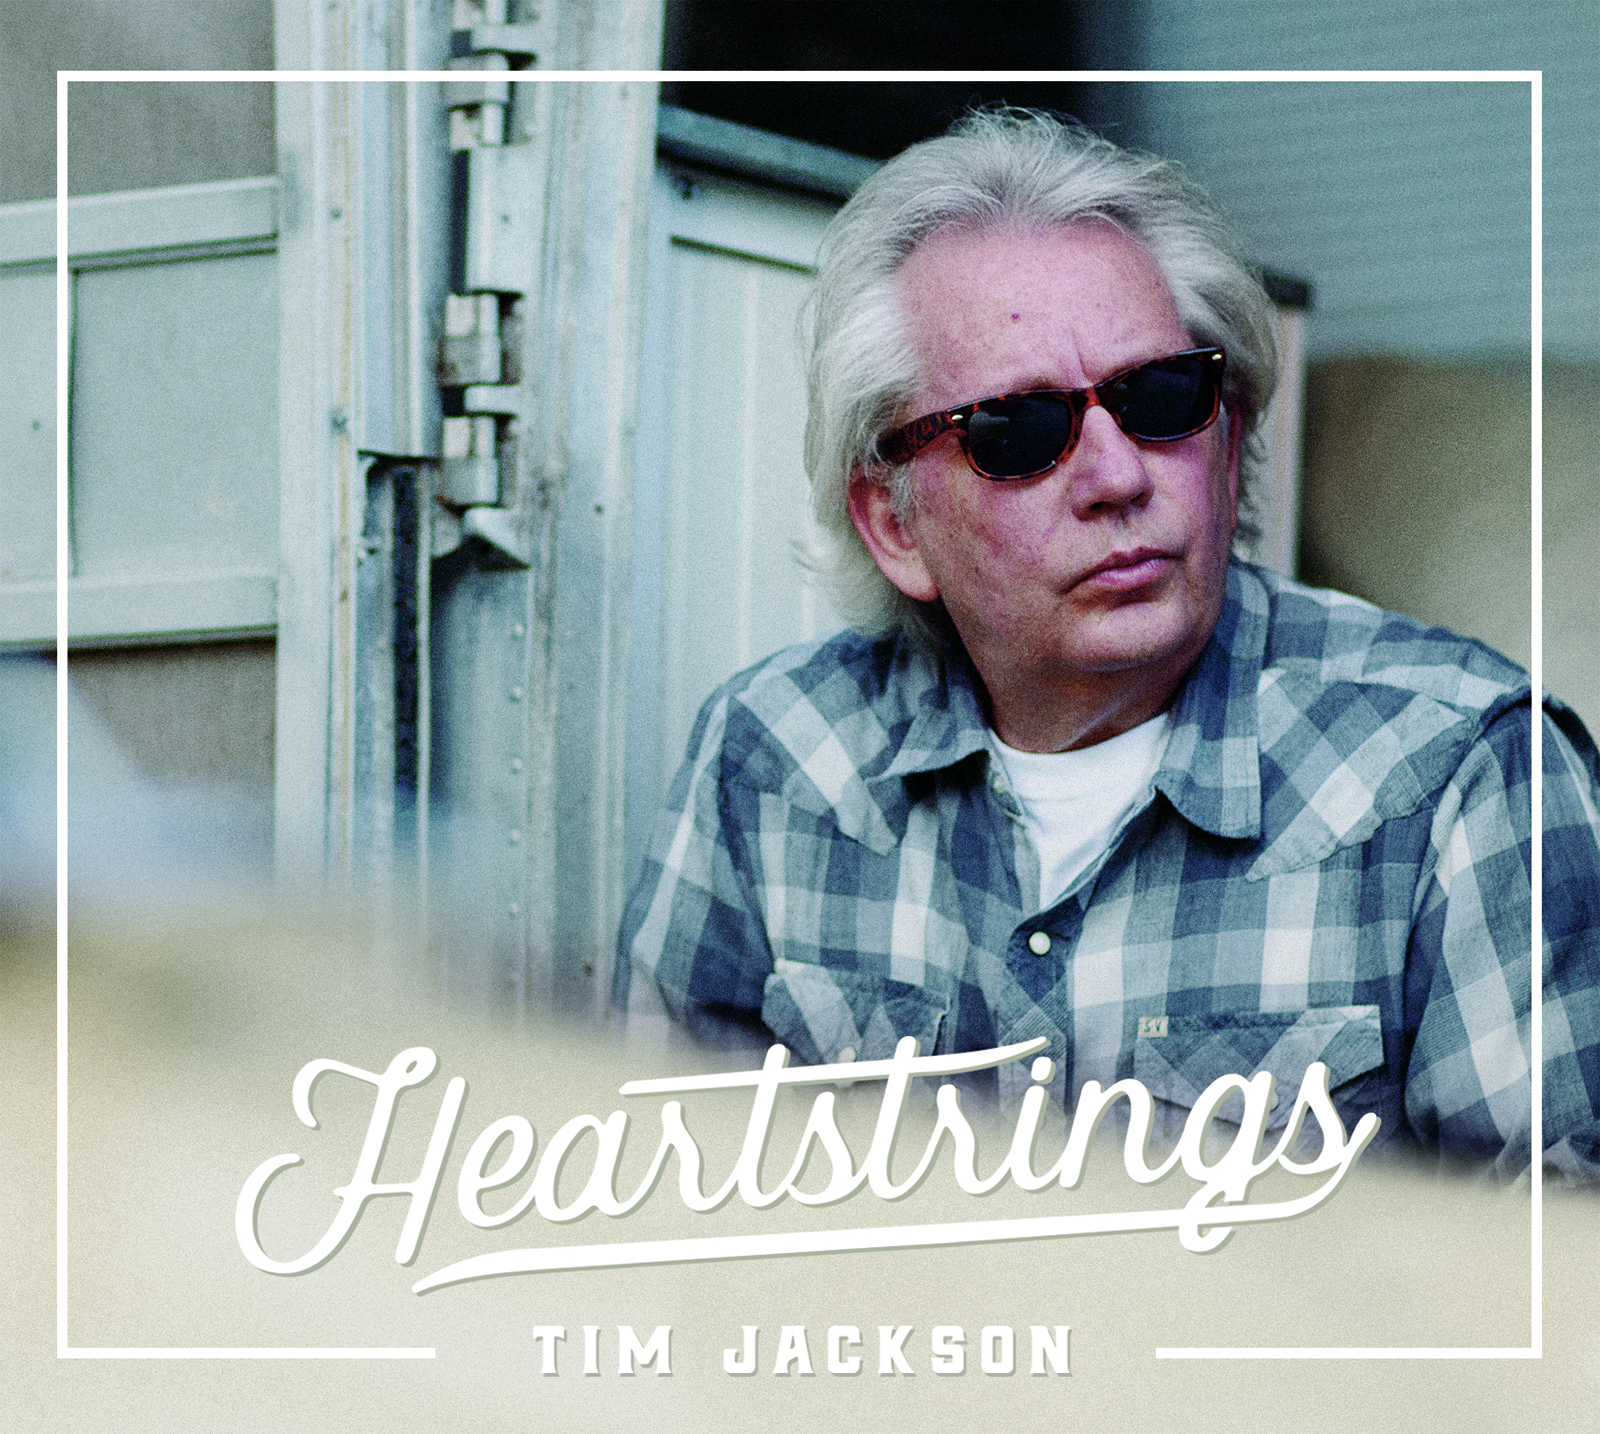 Tim Jackson - Album Cover - First Note Play